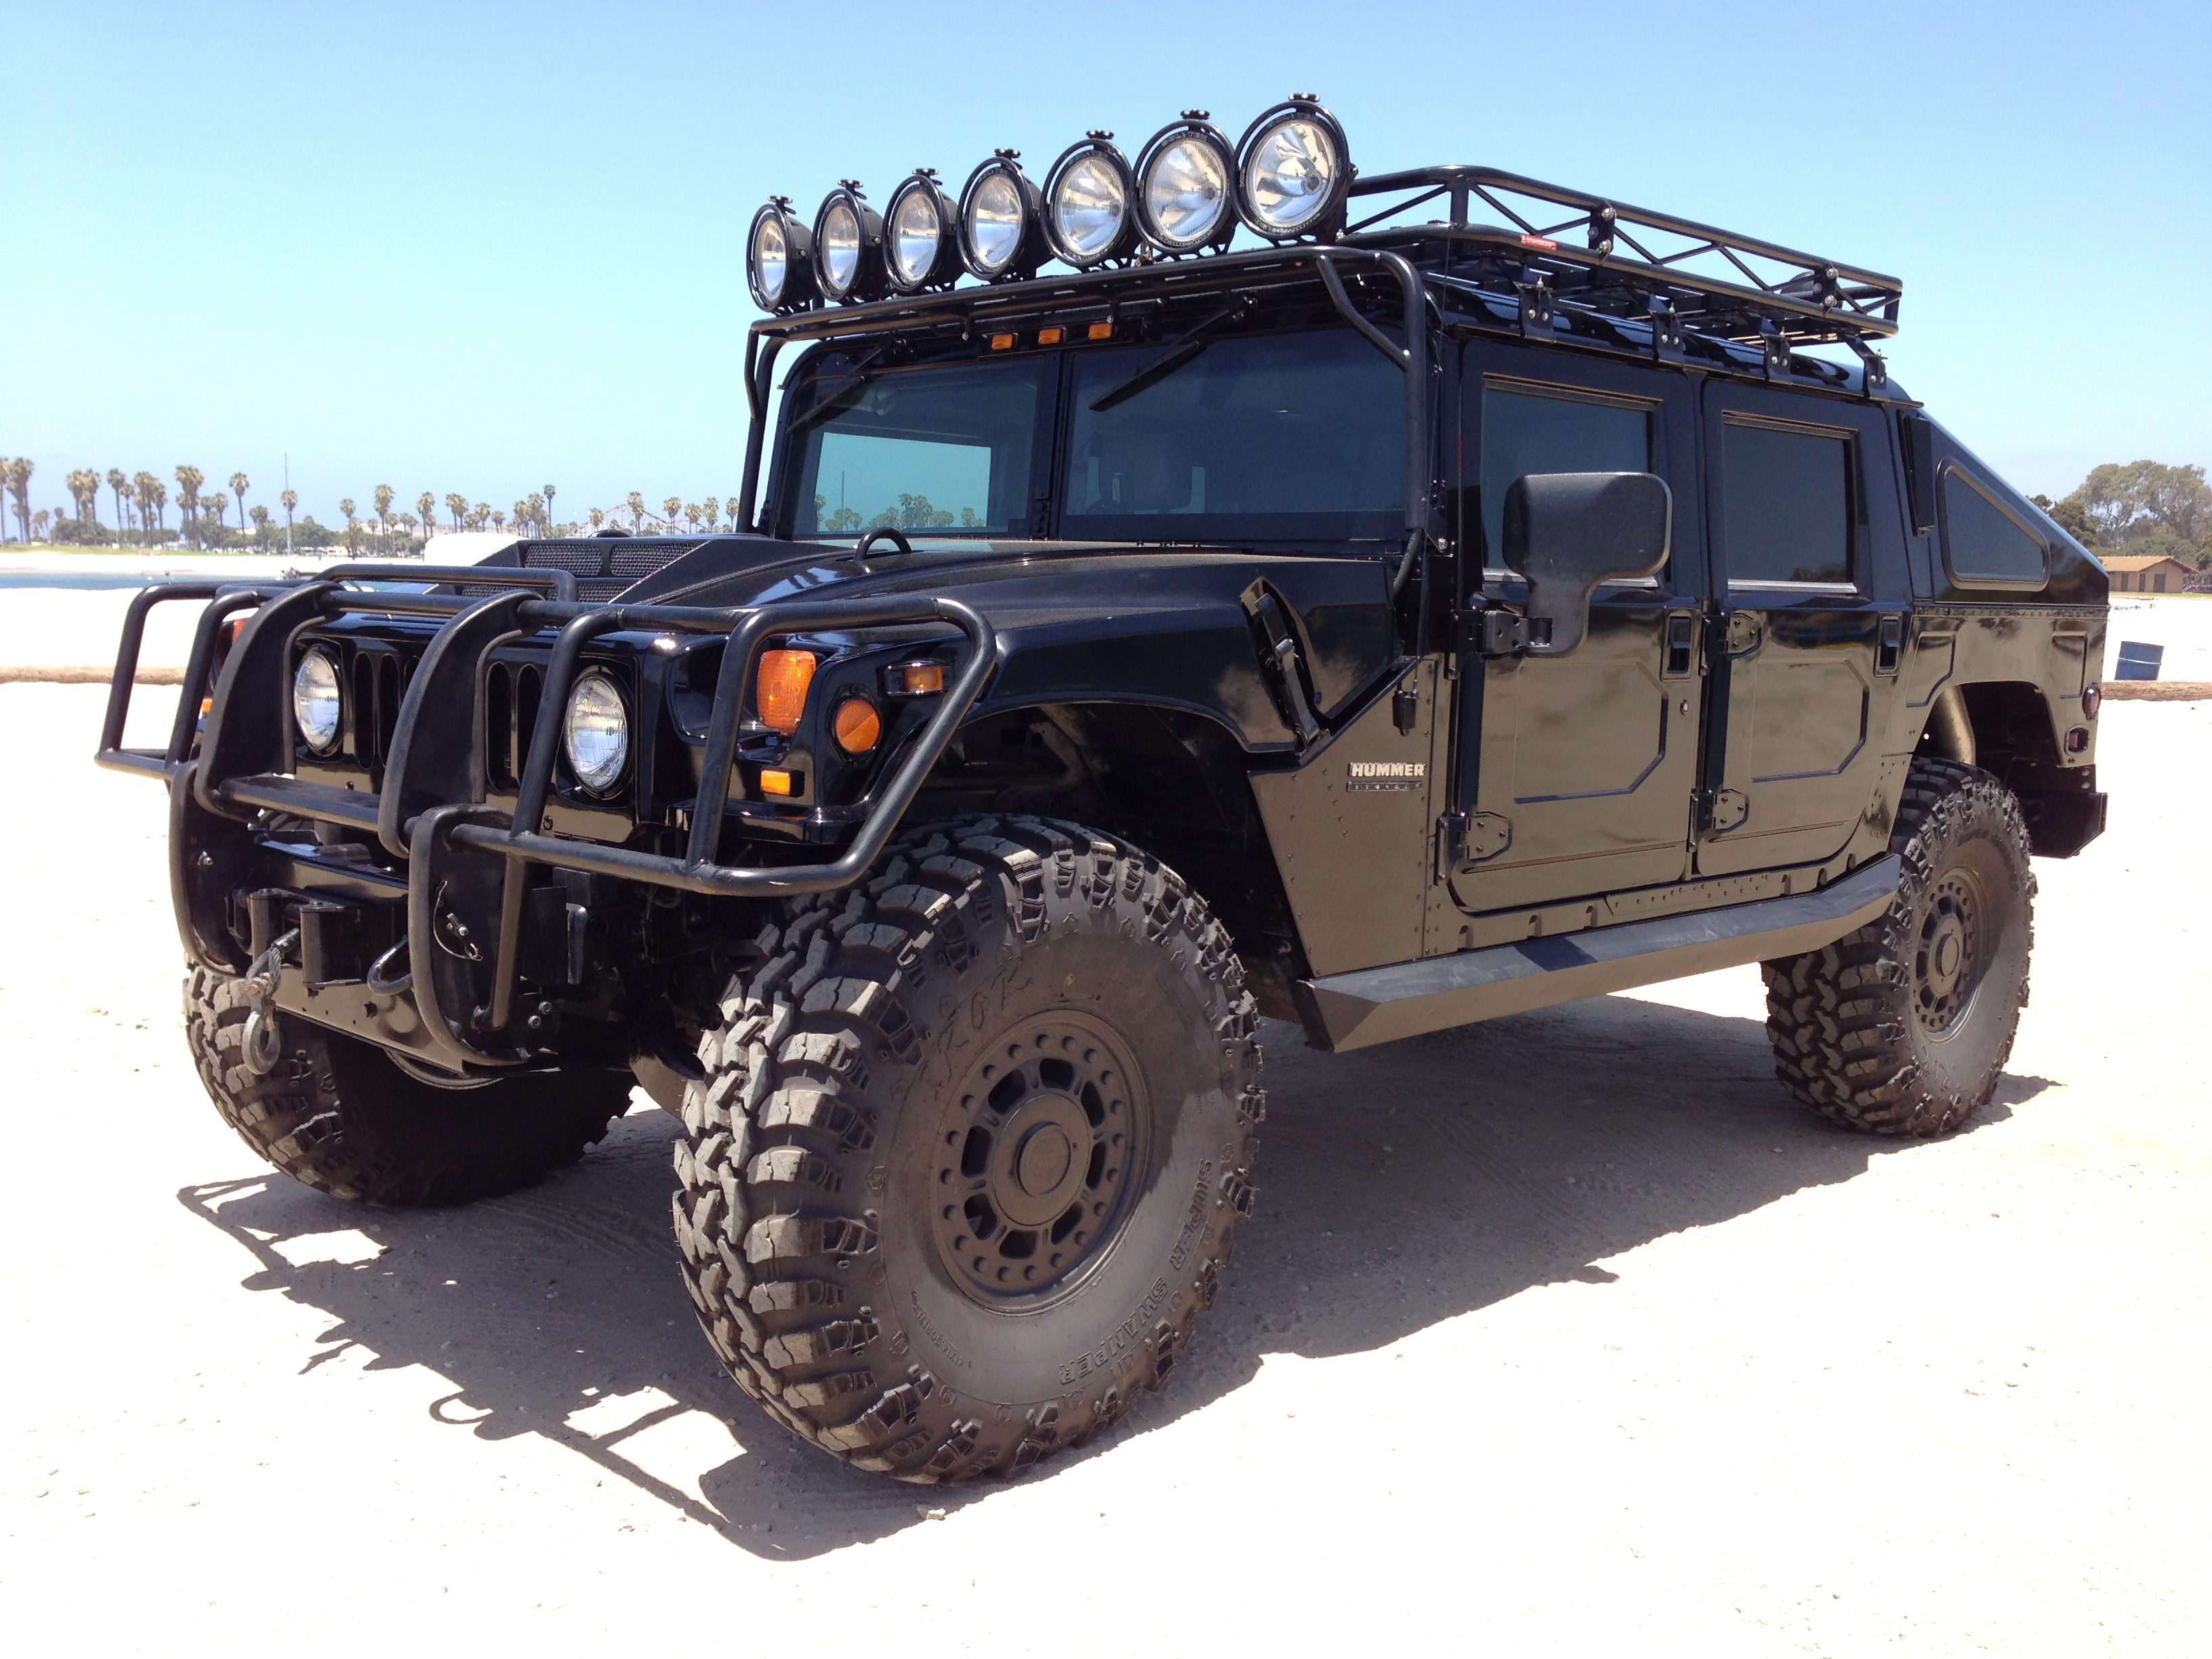 hummer h1 slant back for sale the hummer guy. Black Bedroom Furniture Sets. Home Design Ideas